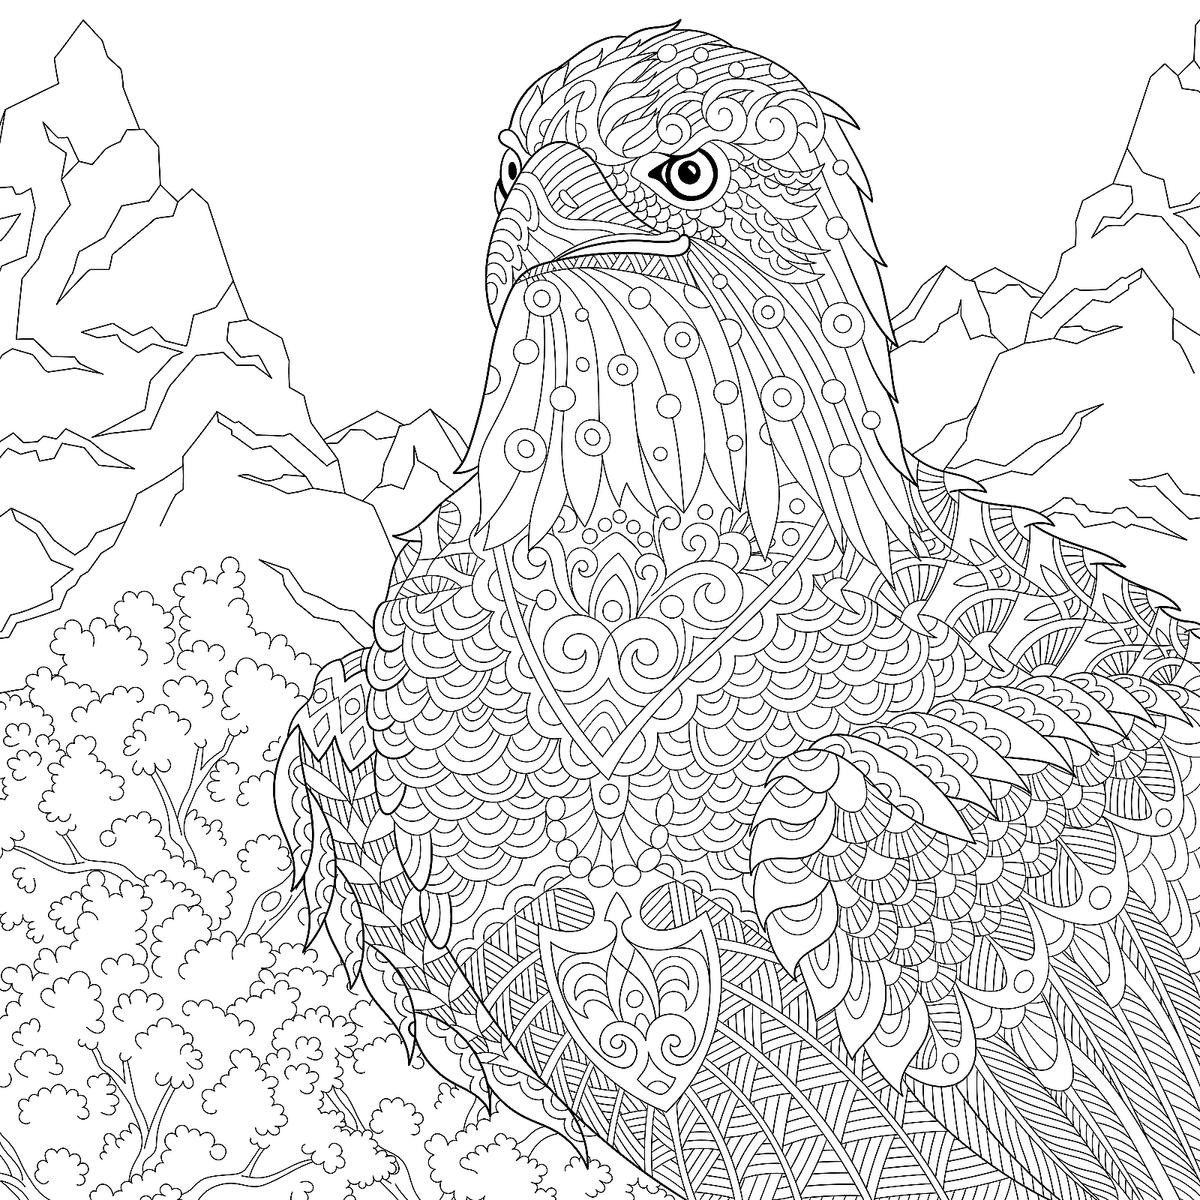 4 of july coloring sheets 4th of july coloring pages let39s celebrate 4 coloring of july sheets